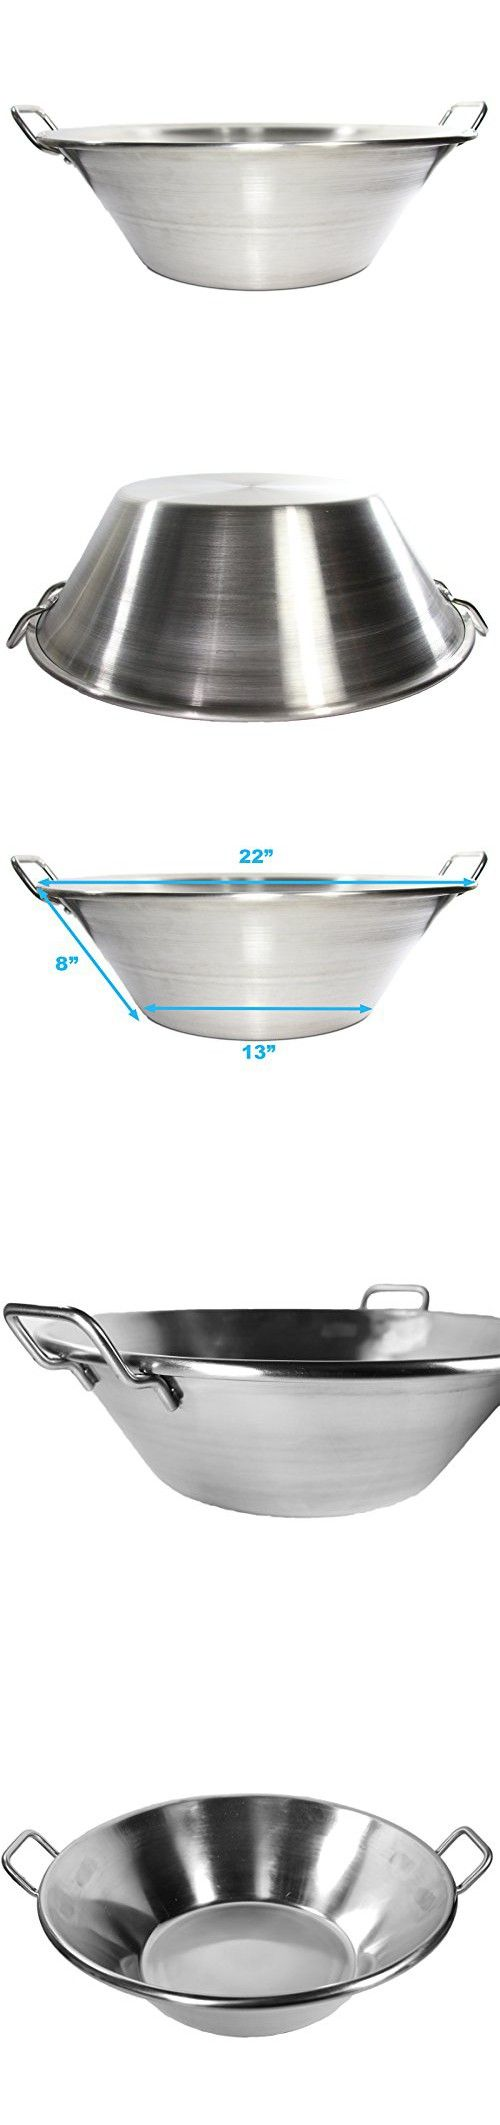 "Cazo Stainless Steel Large 22"" Widespread Heavy Duty Caso Para Freir Carnitas Acero Inoxidable"